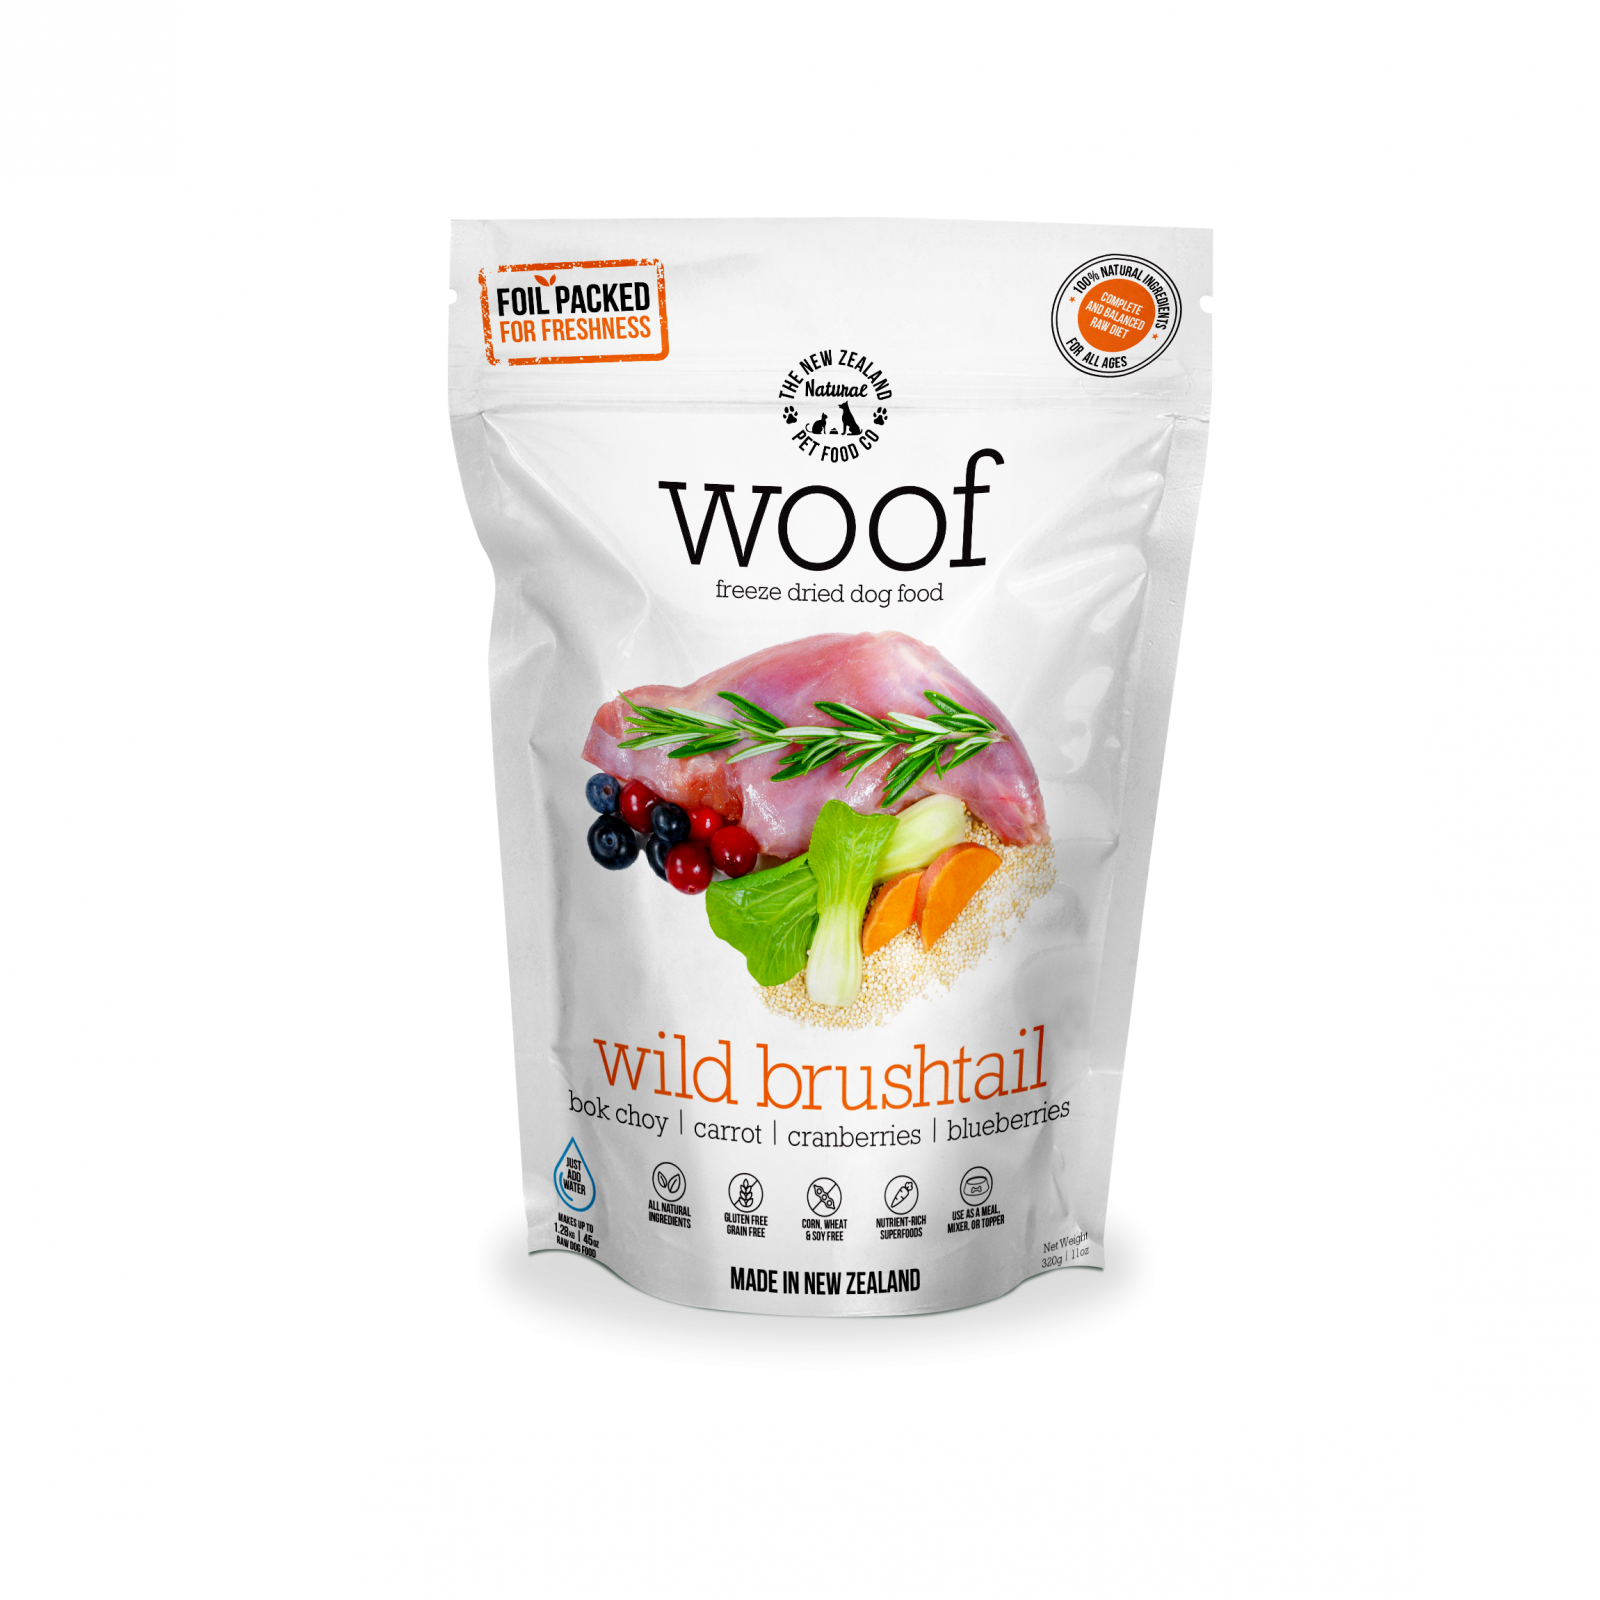 WOOF Woof Wild Brushtail Freeze Dried Dog Food